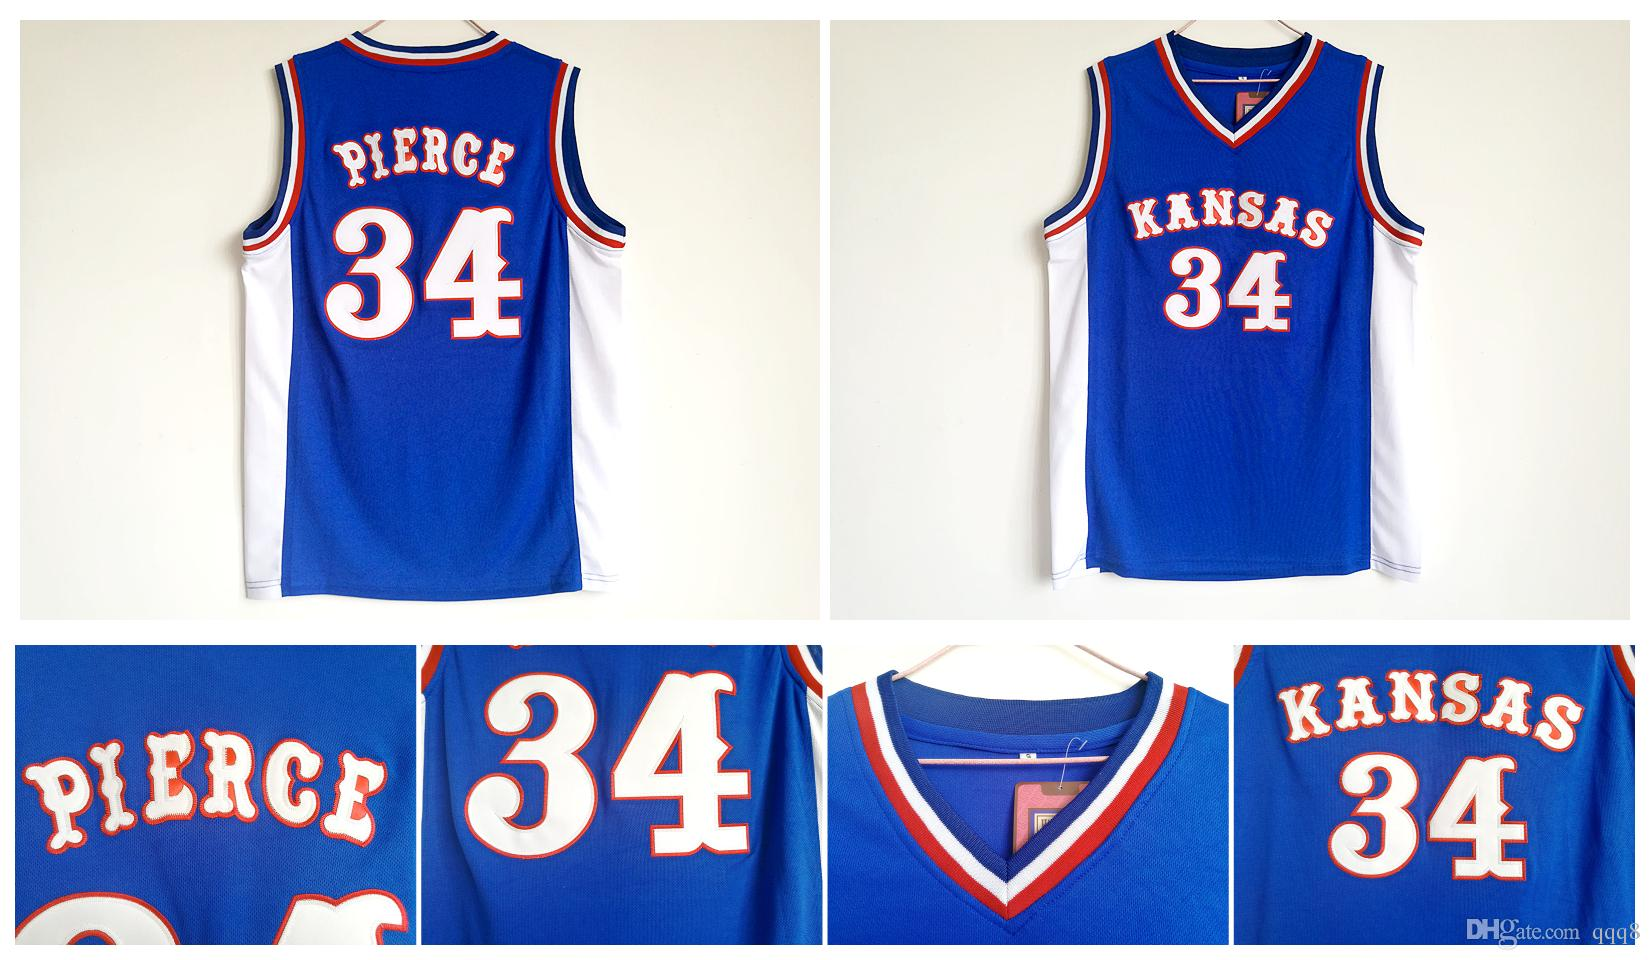 34 paul pierce jersey online